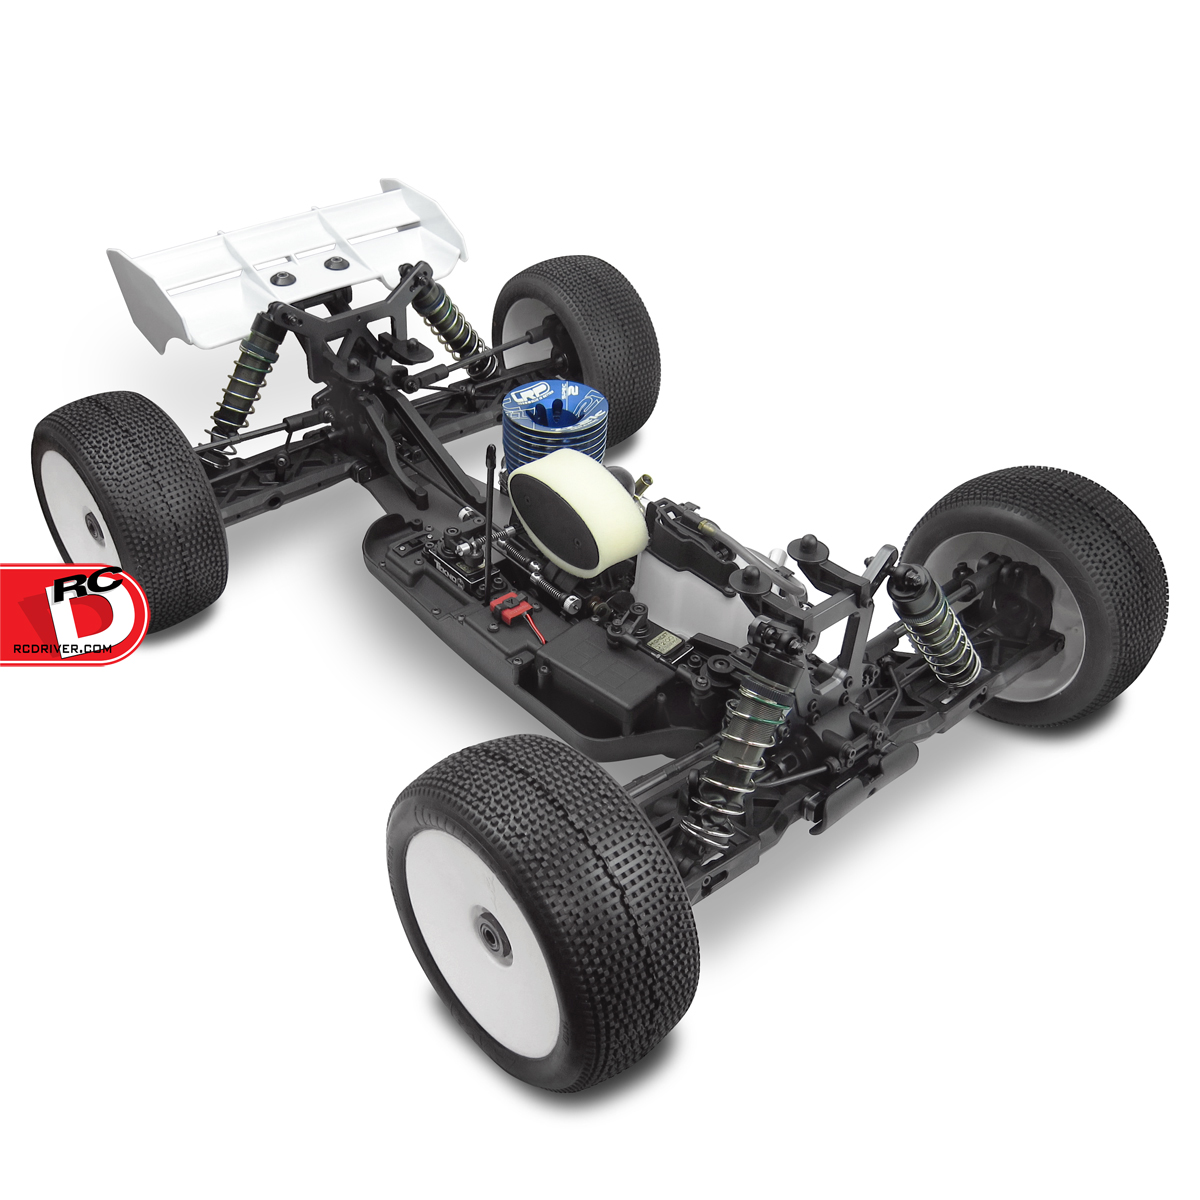 traxxas truggy with Tekno Rc Nt48 3  Petition Nitro Truggy Kit on Avions Rc Electrique together with E Revo Vxl as well 141227139420 together with 311354030782 together with 381020.